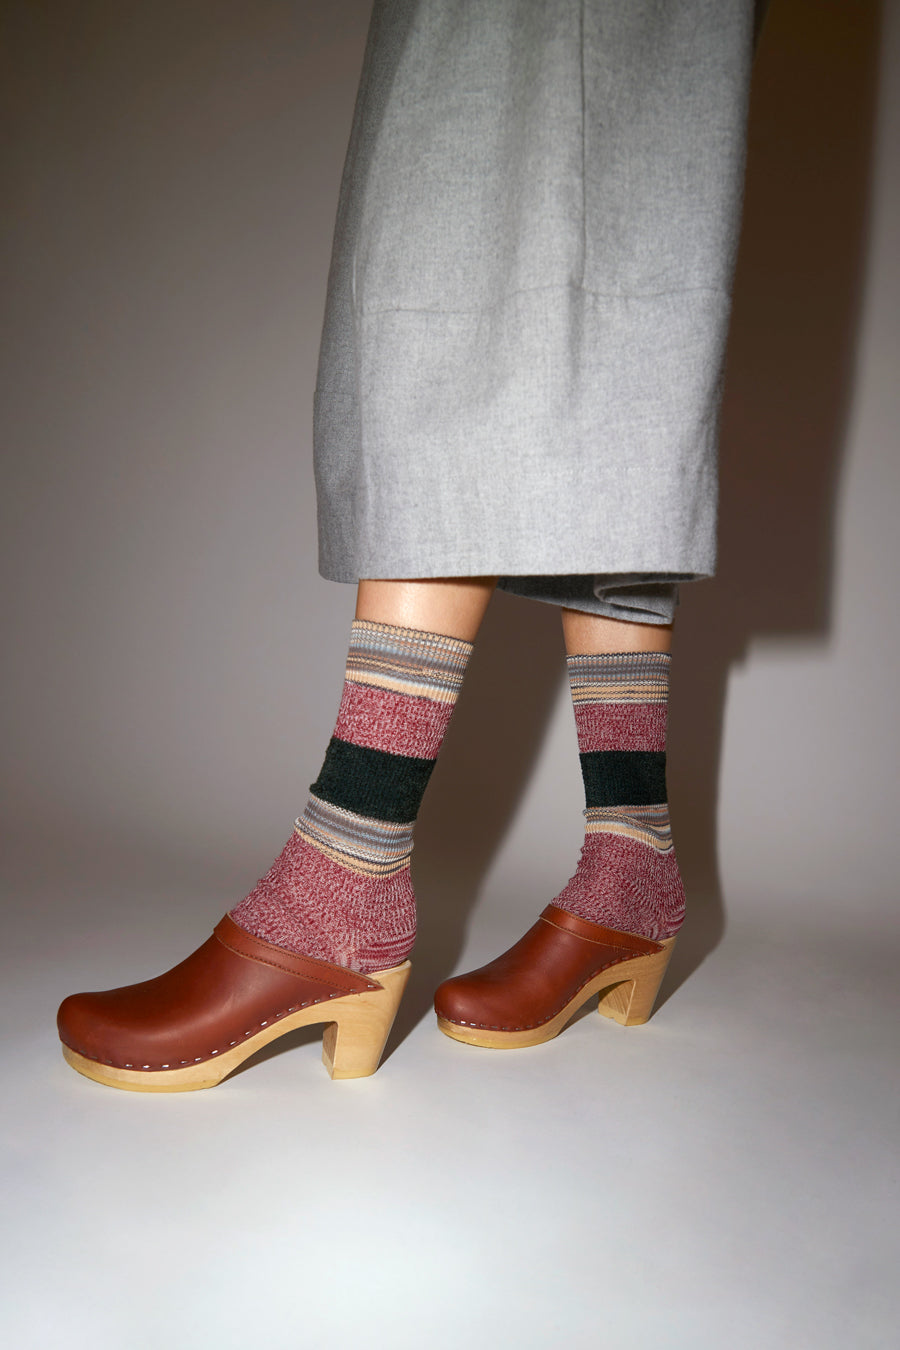 No.6 Old School Clog on High Heel in Bourbon